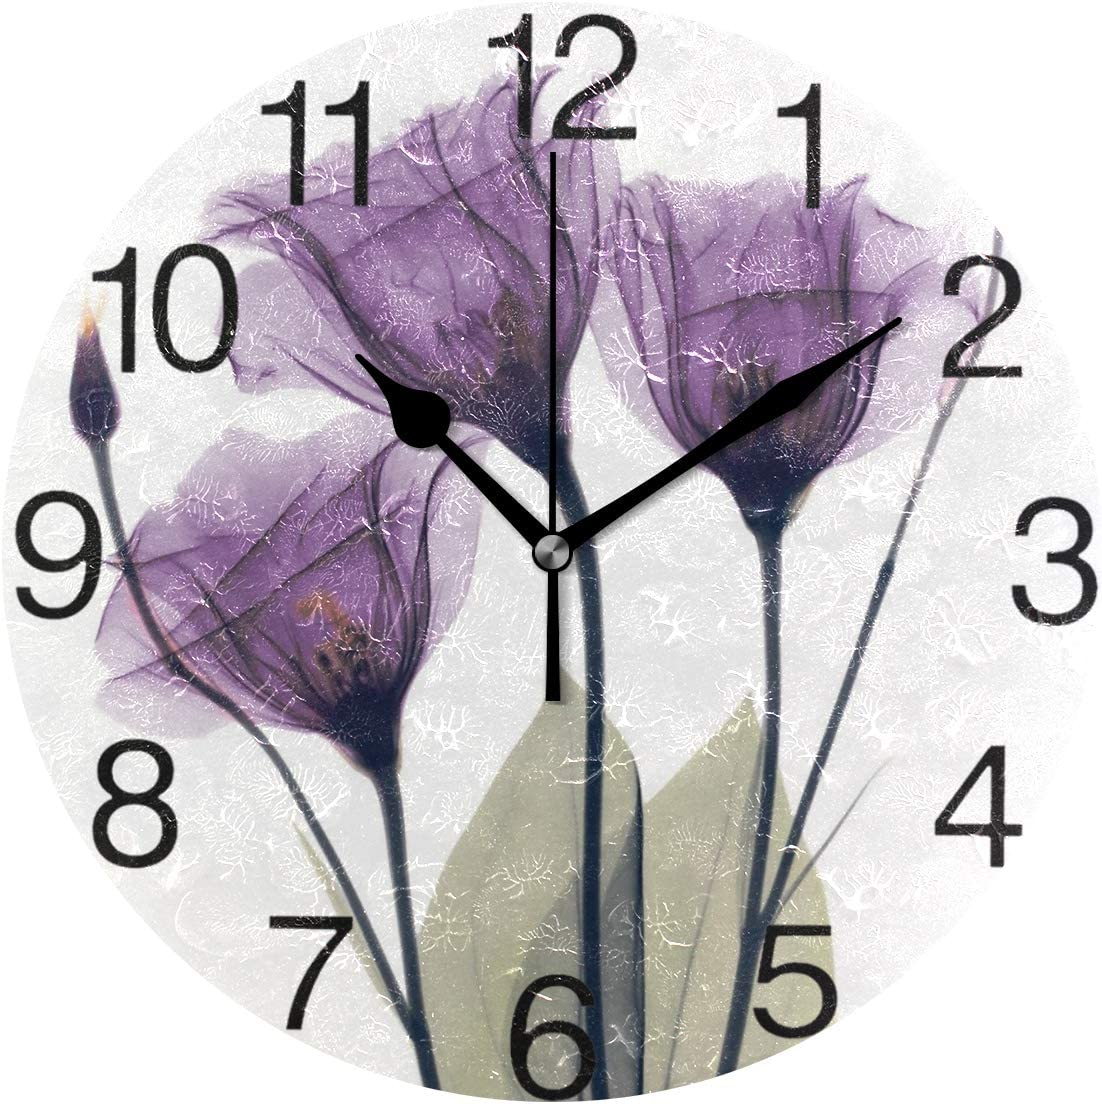 senya Lavender Hope Flowers Round Wall Clock, Silent Non Ticking Oil Painting Decorative for Home Office School Clock Art